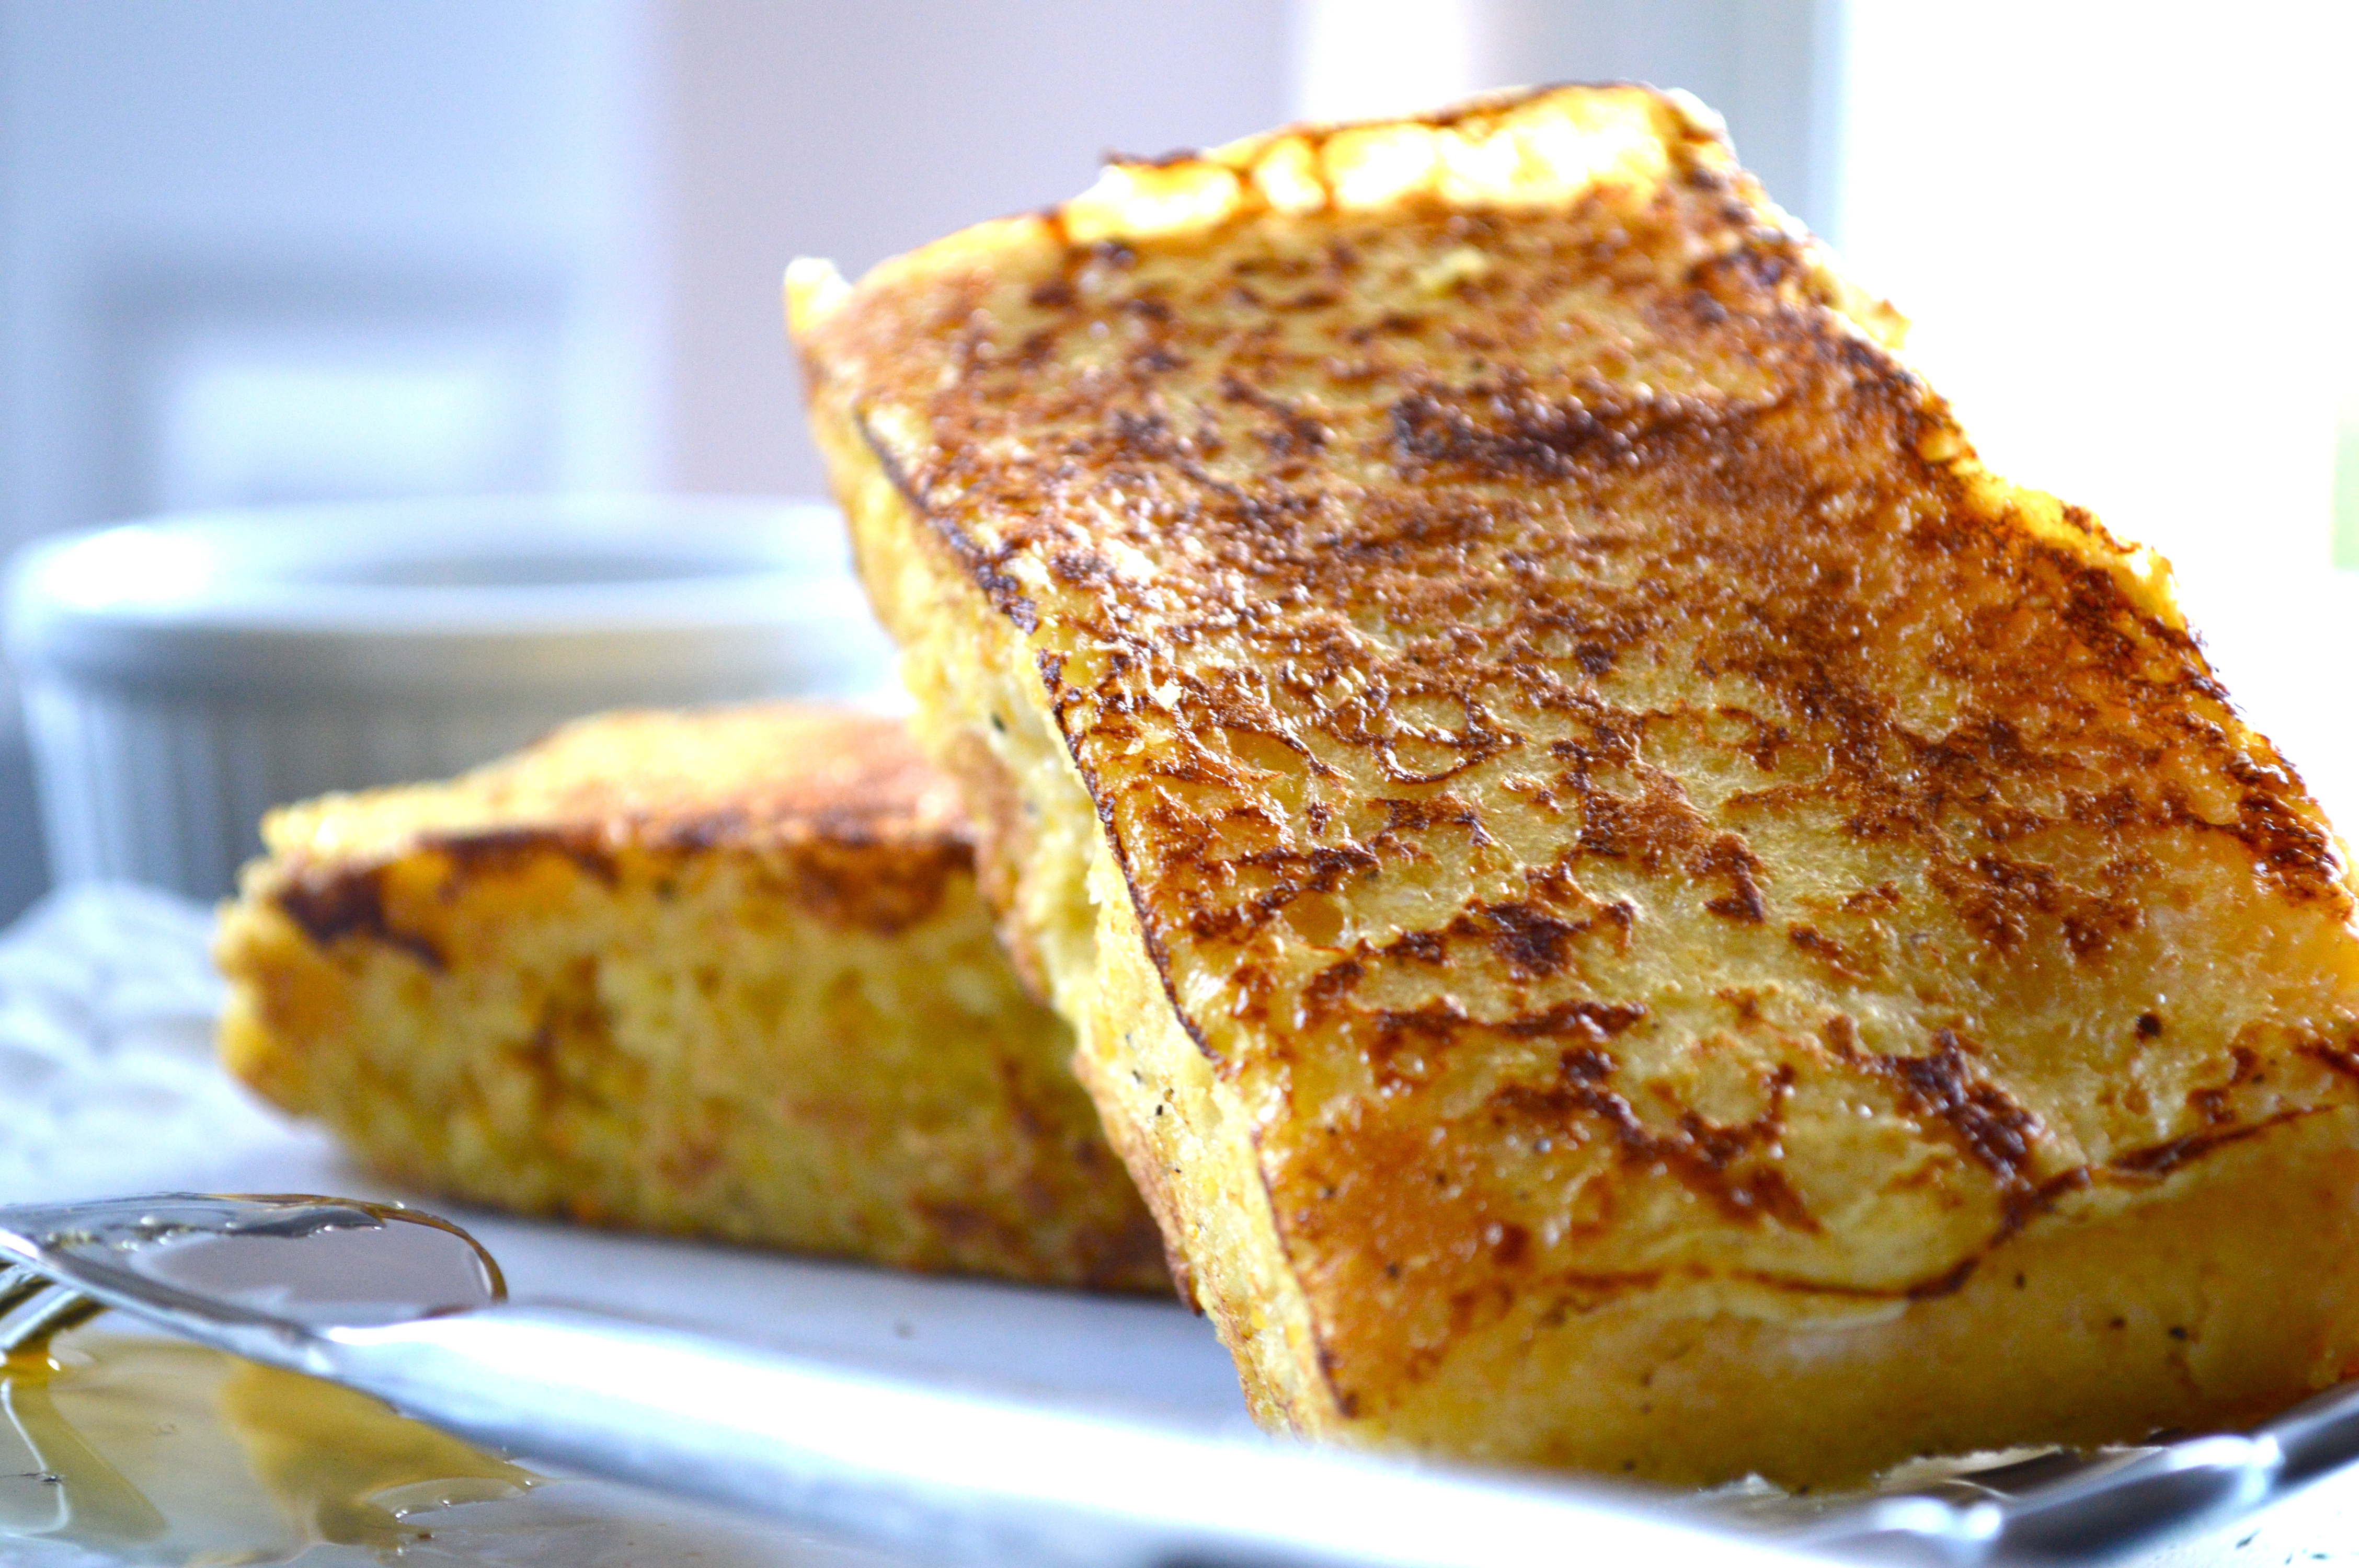 French Toast Computer Wallpaper